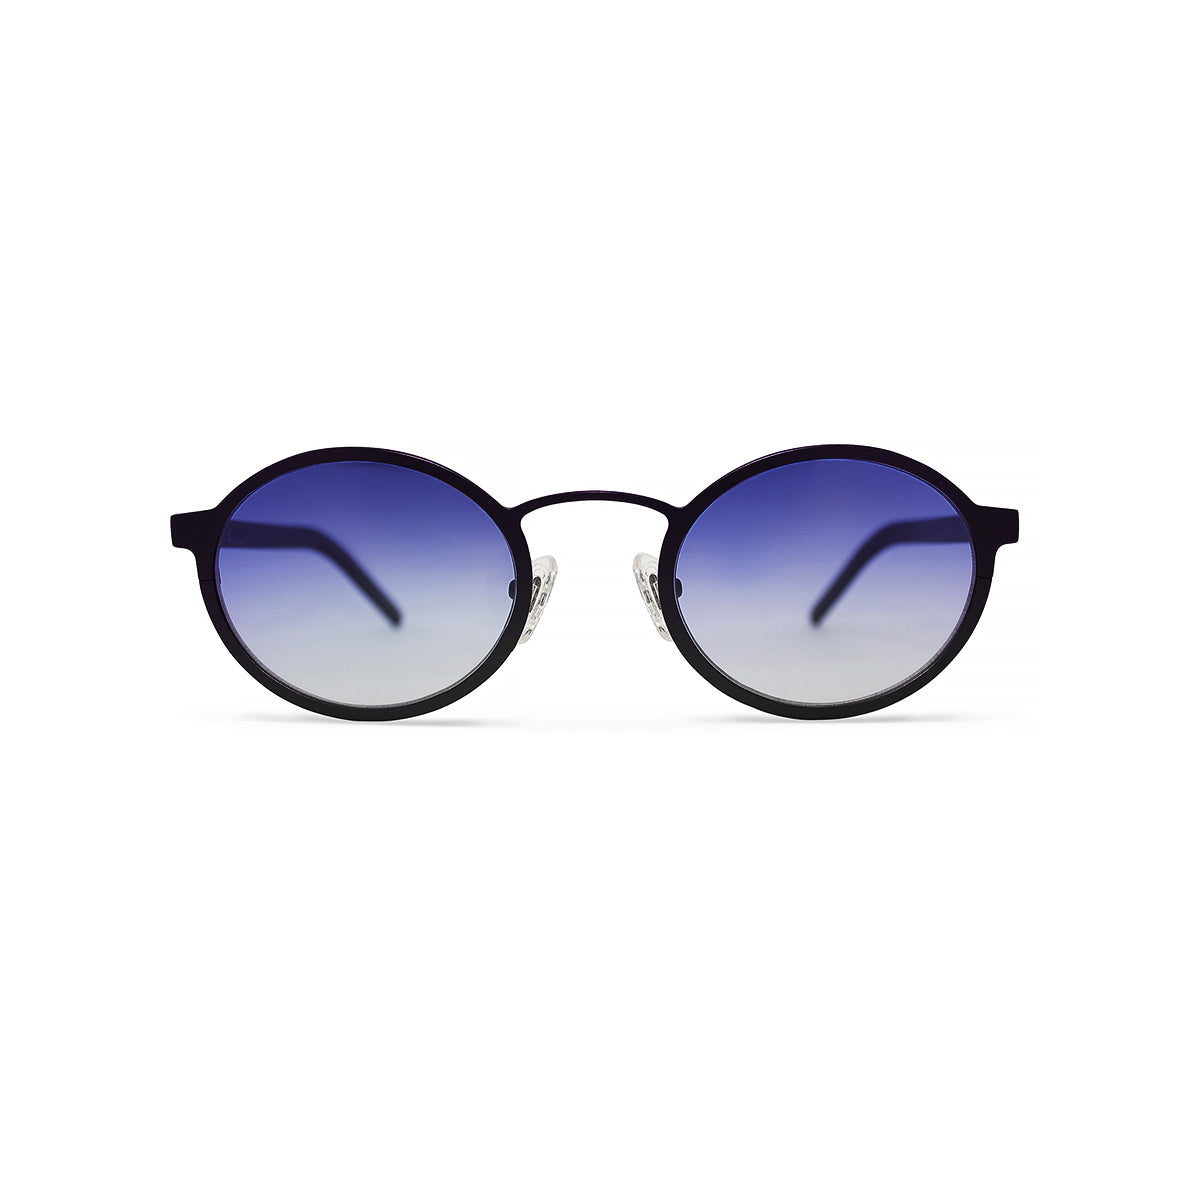 Metal. Gloss Black. Lilac Lens. - BLYSZAK eyewear eyewear - eyewear, optical, sunglasses